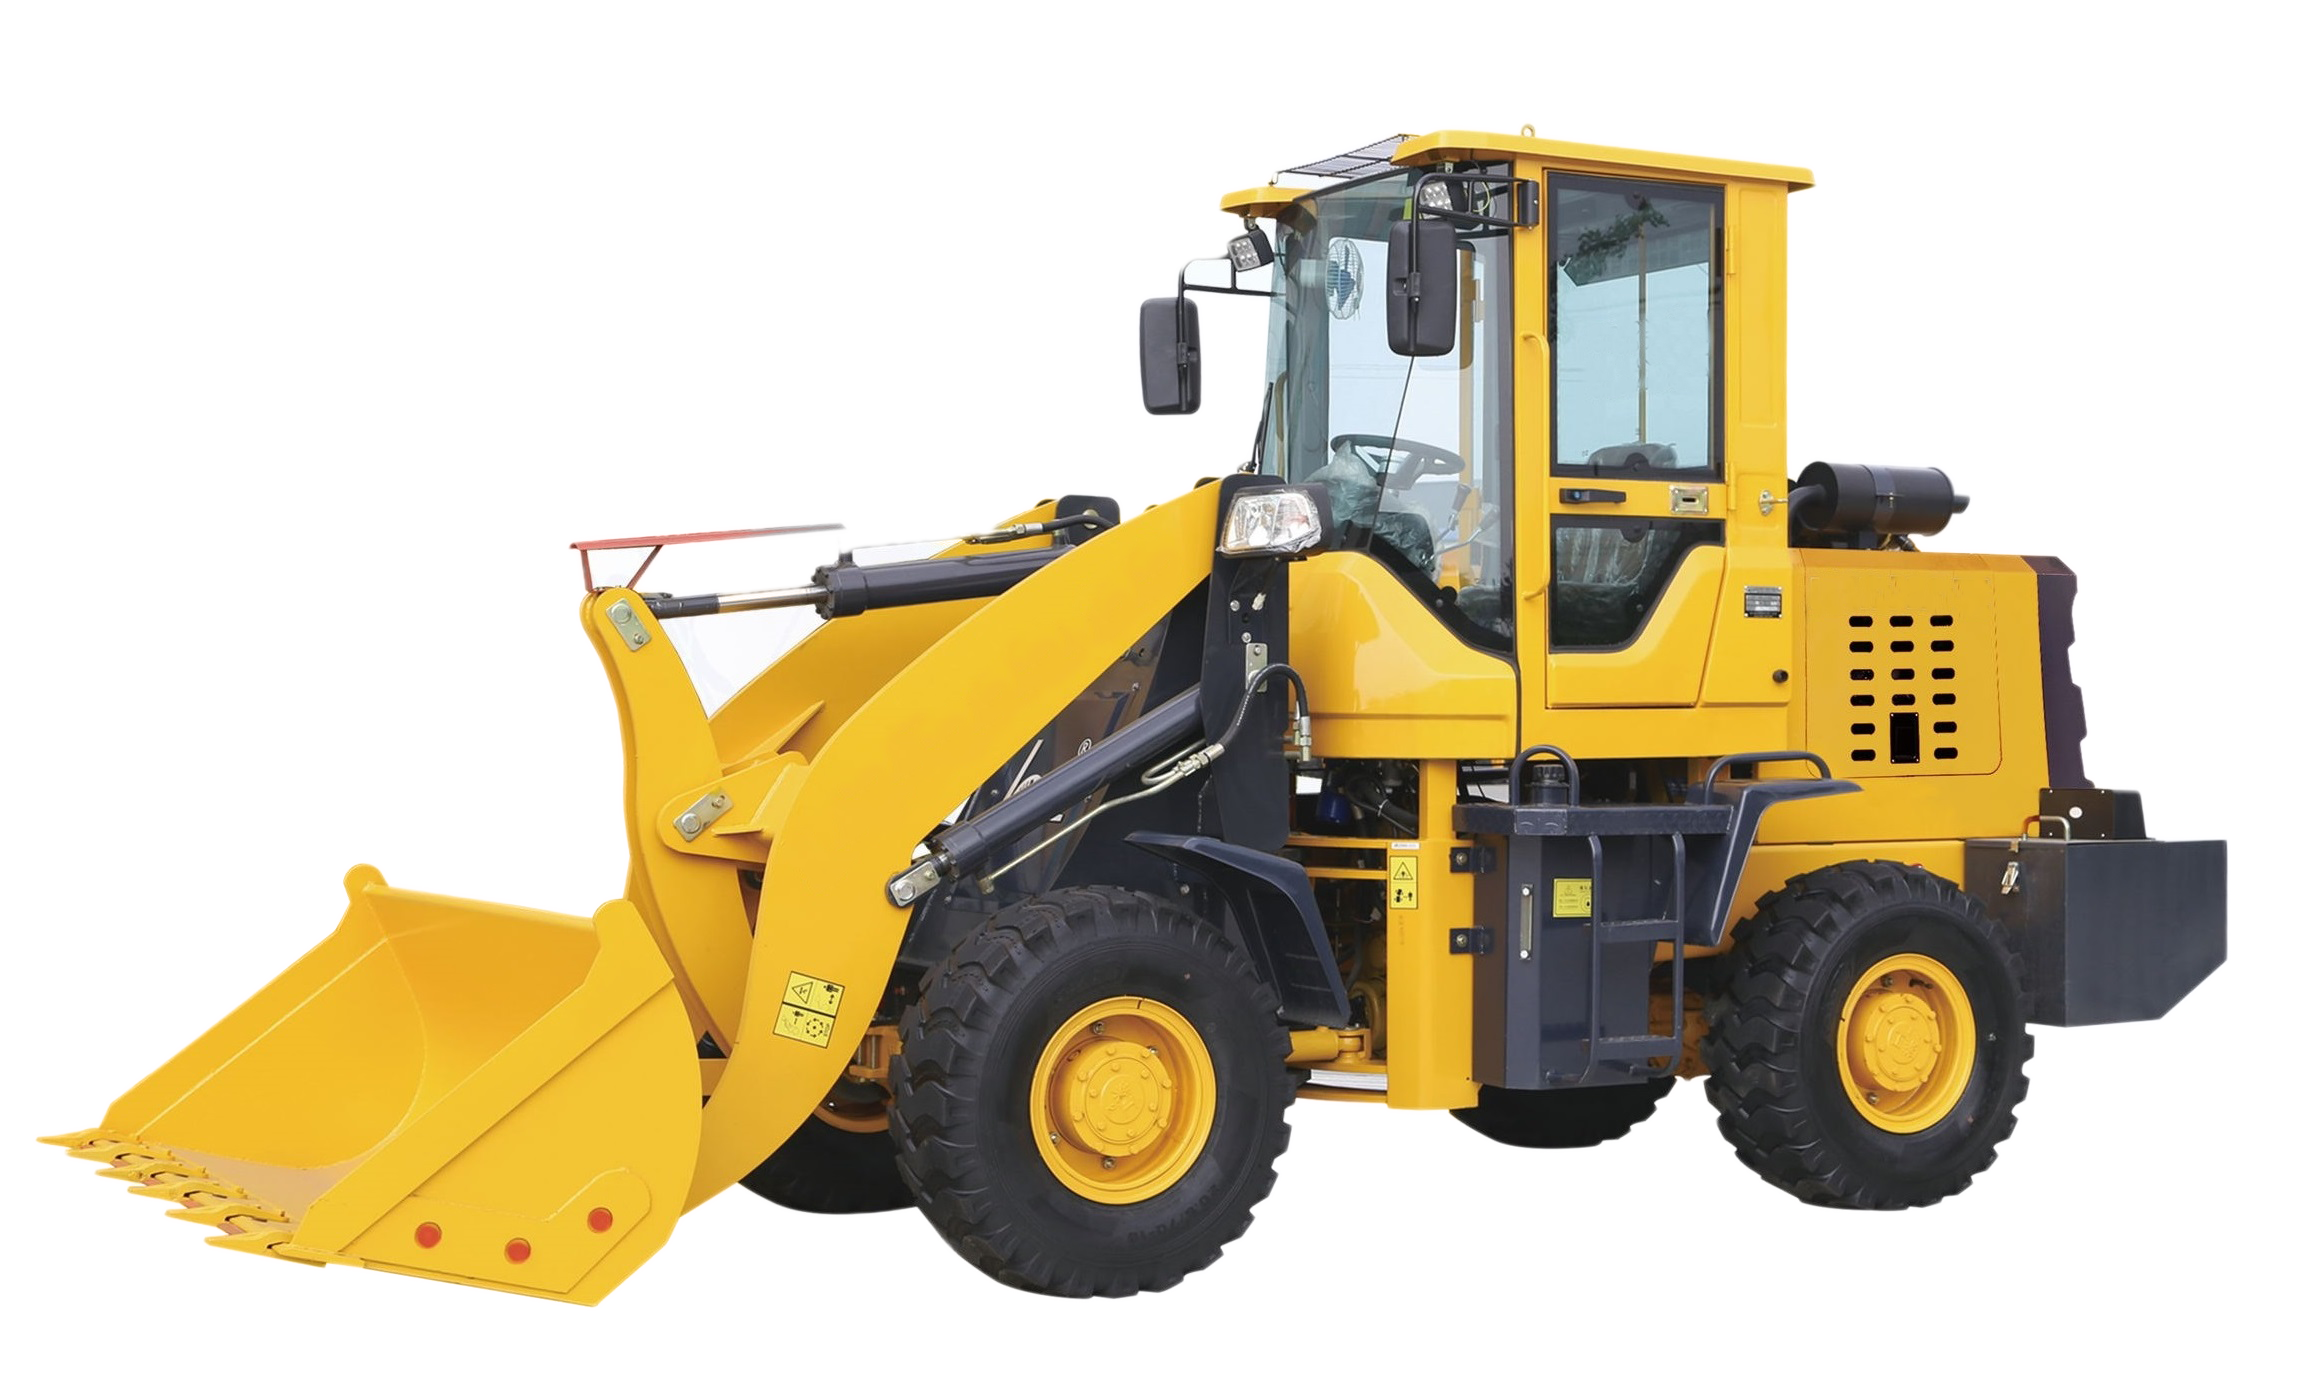 crawler excavator, wheel loader, backhoe loader